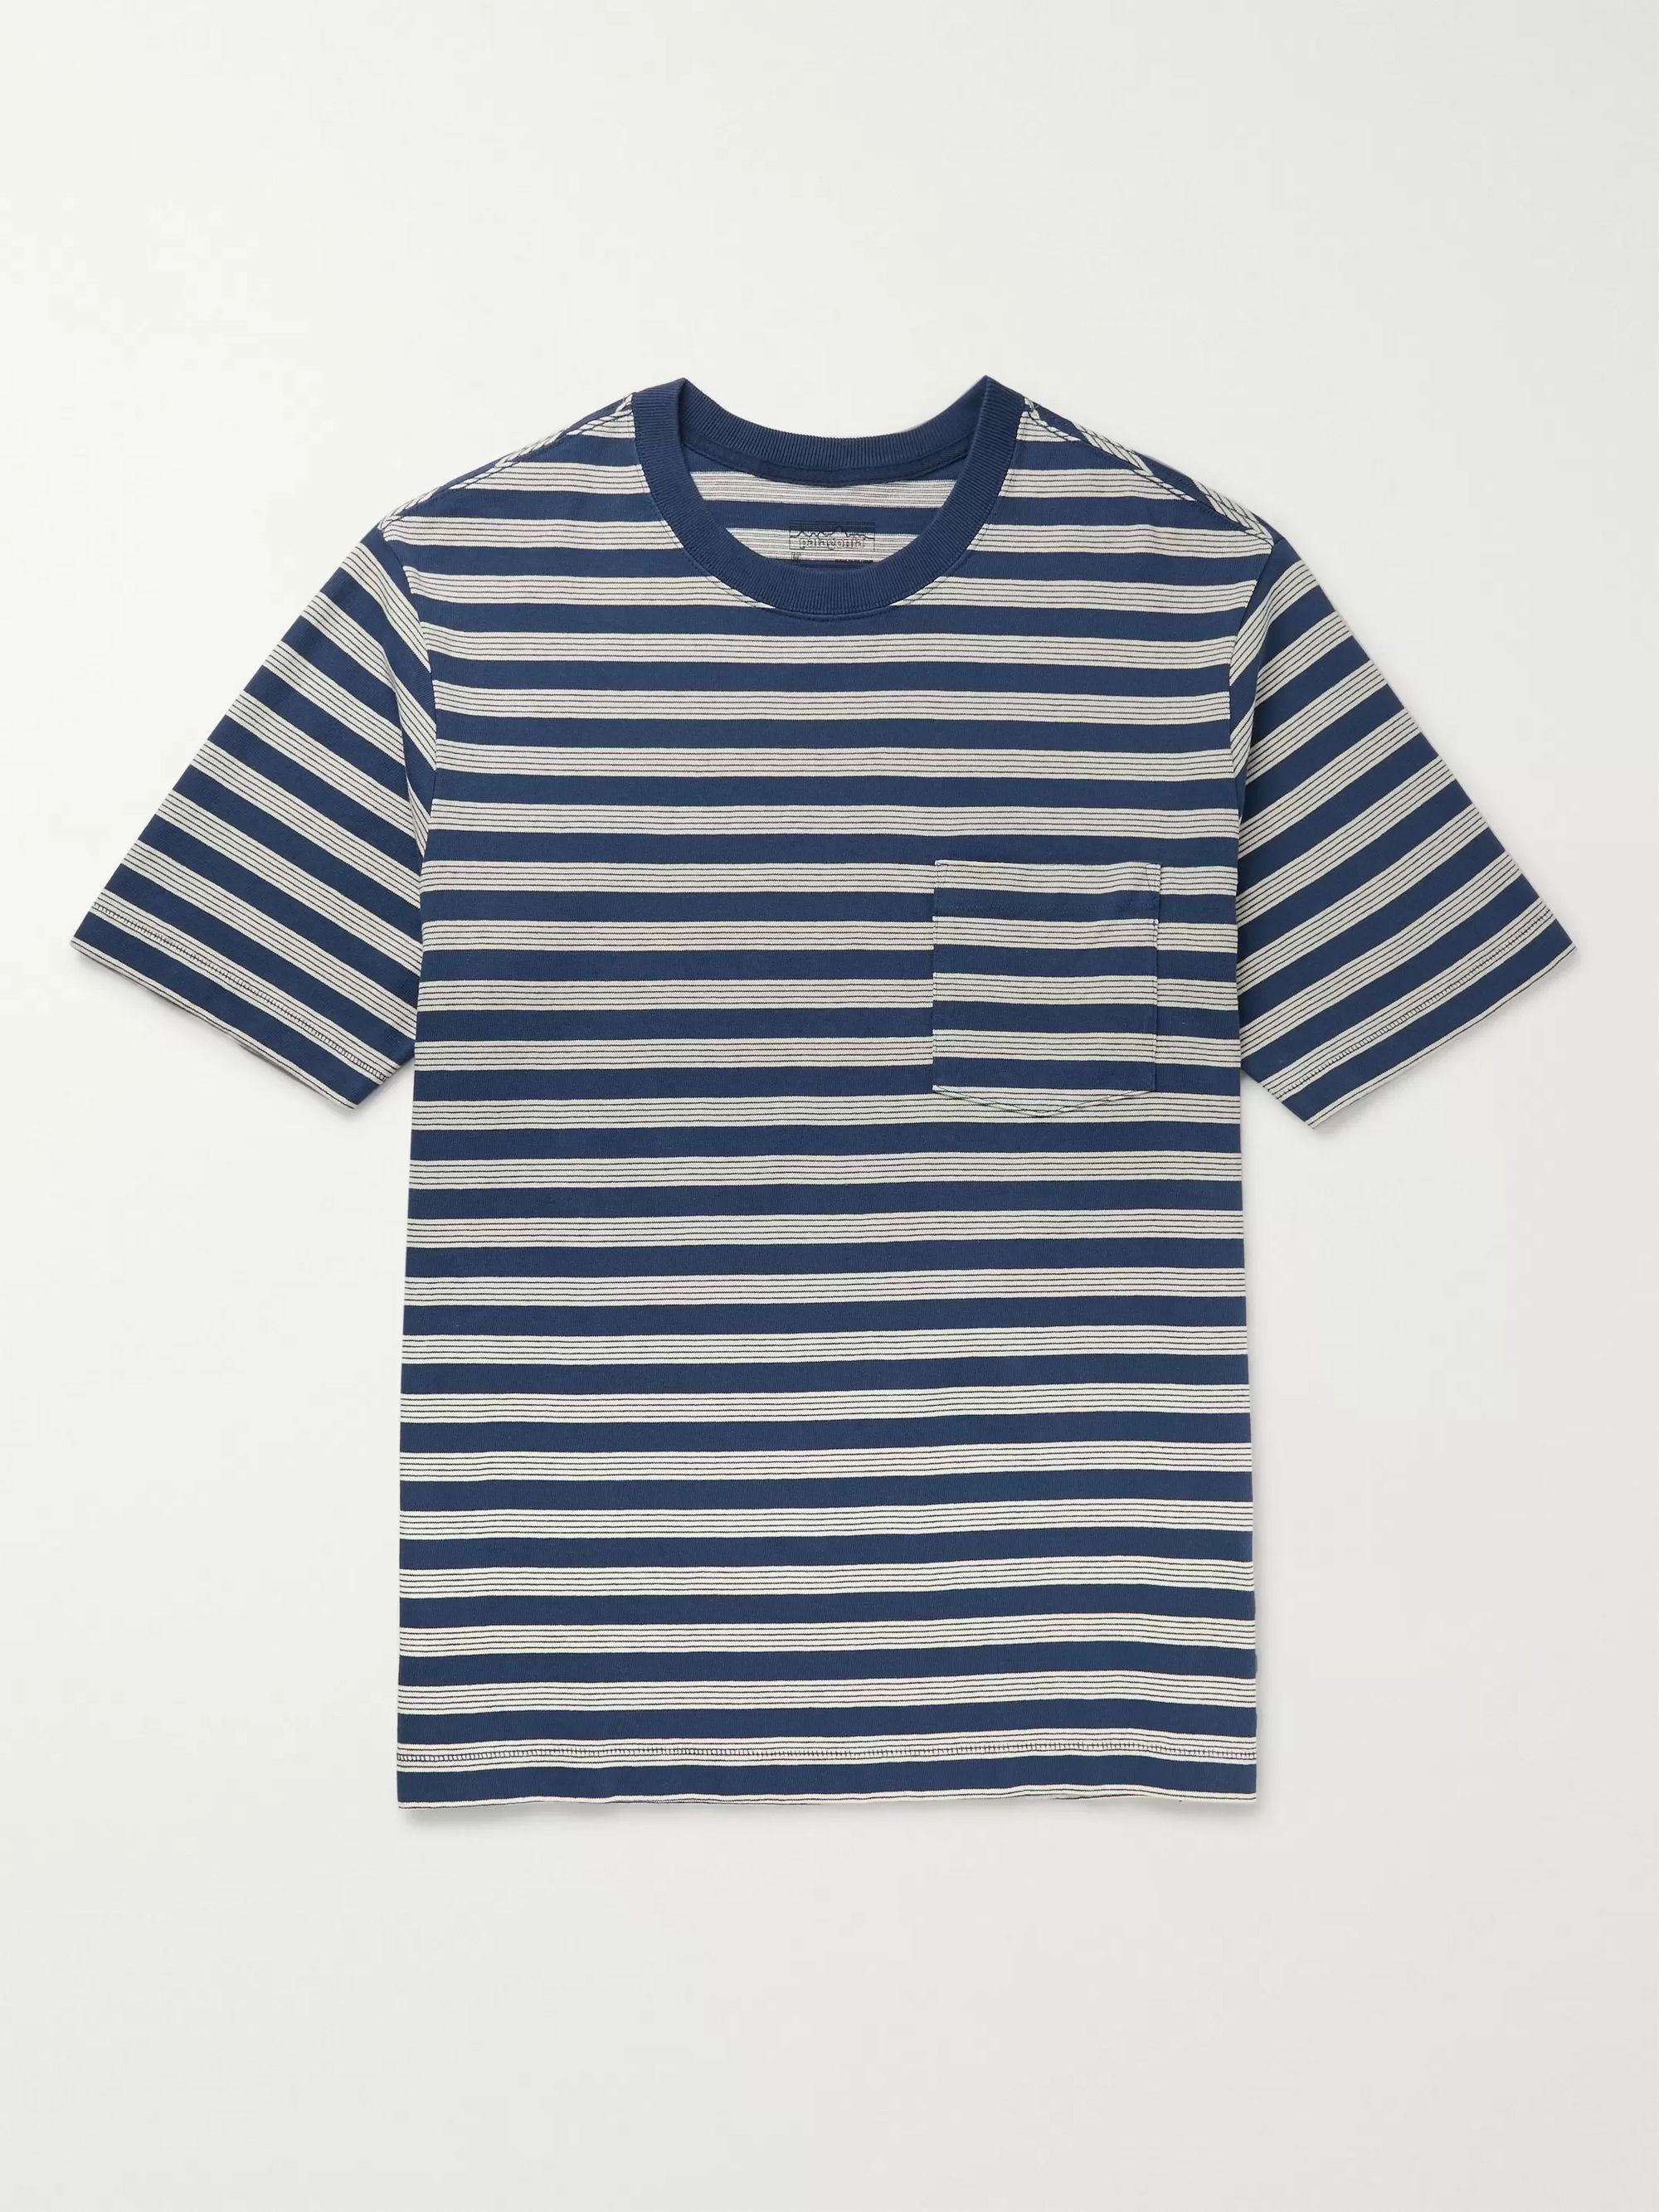 Patagonia Striped Organic Cotton-Jersey T-Shirt